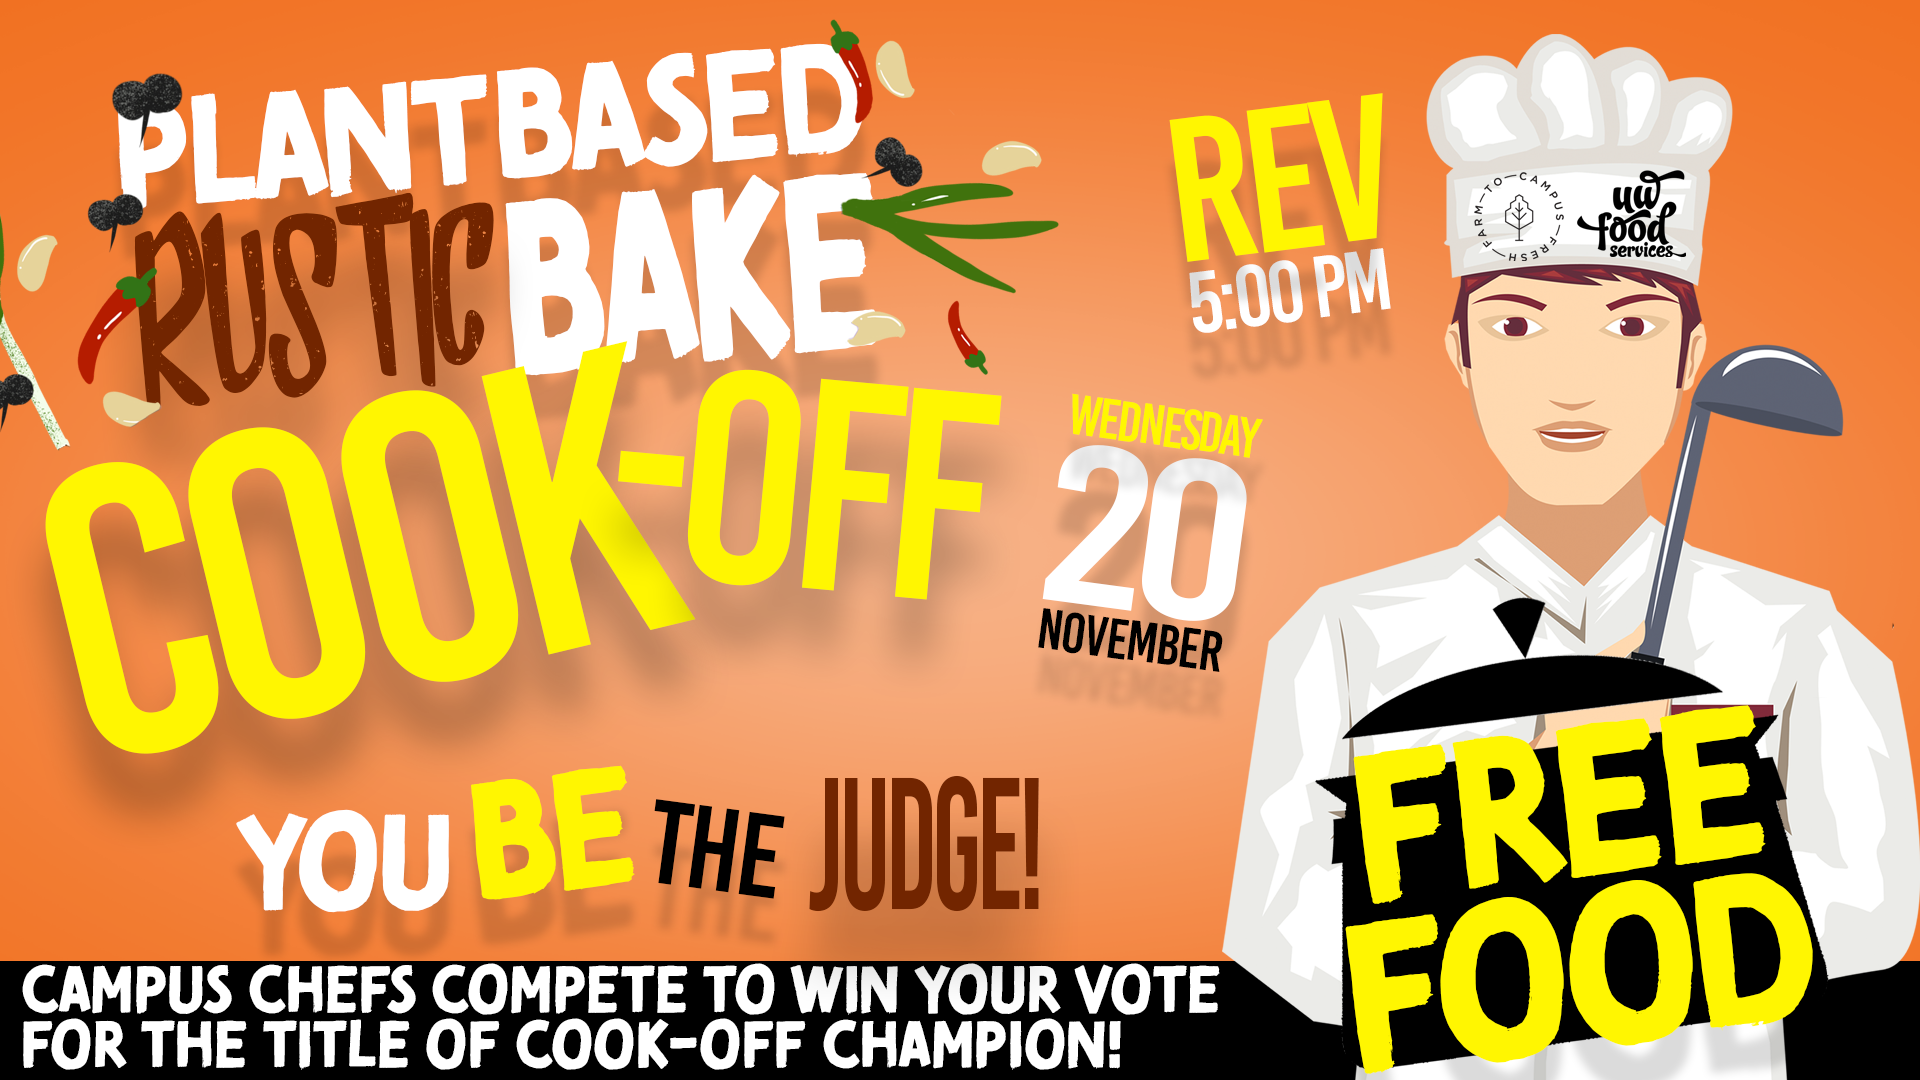 plant based rustic cook off you be the judge, free food, November 20 at 5pm